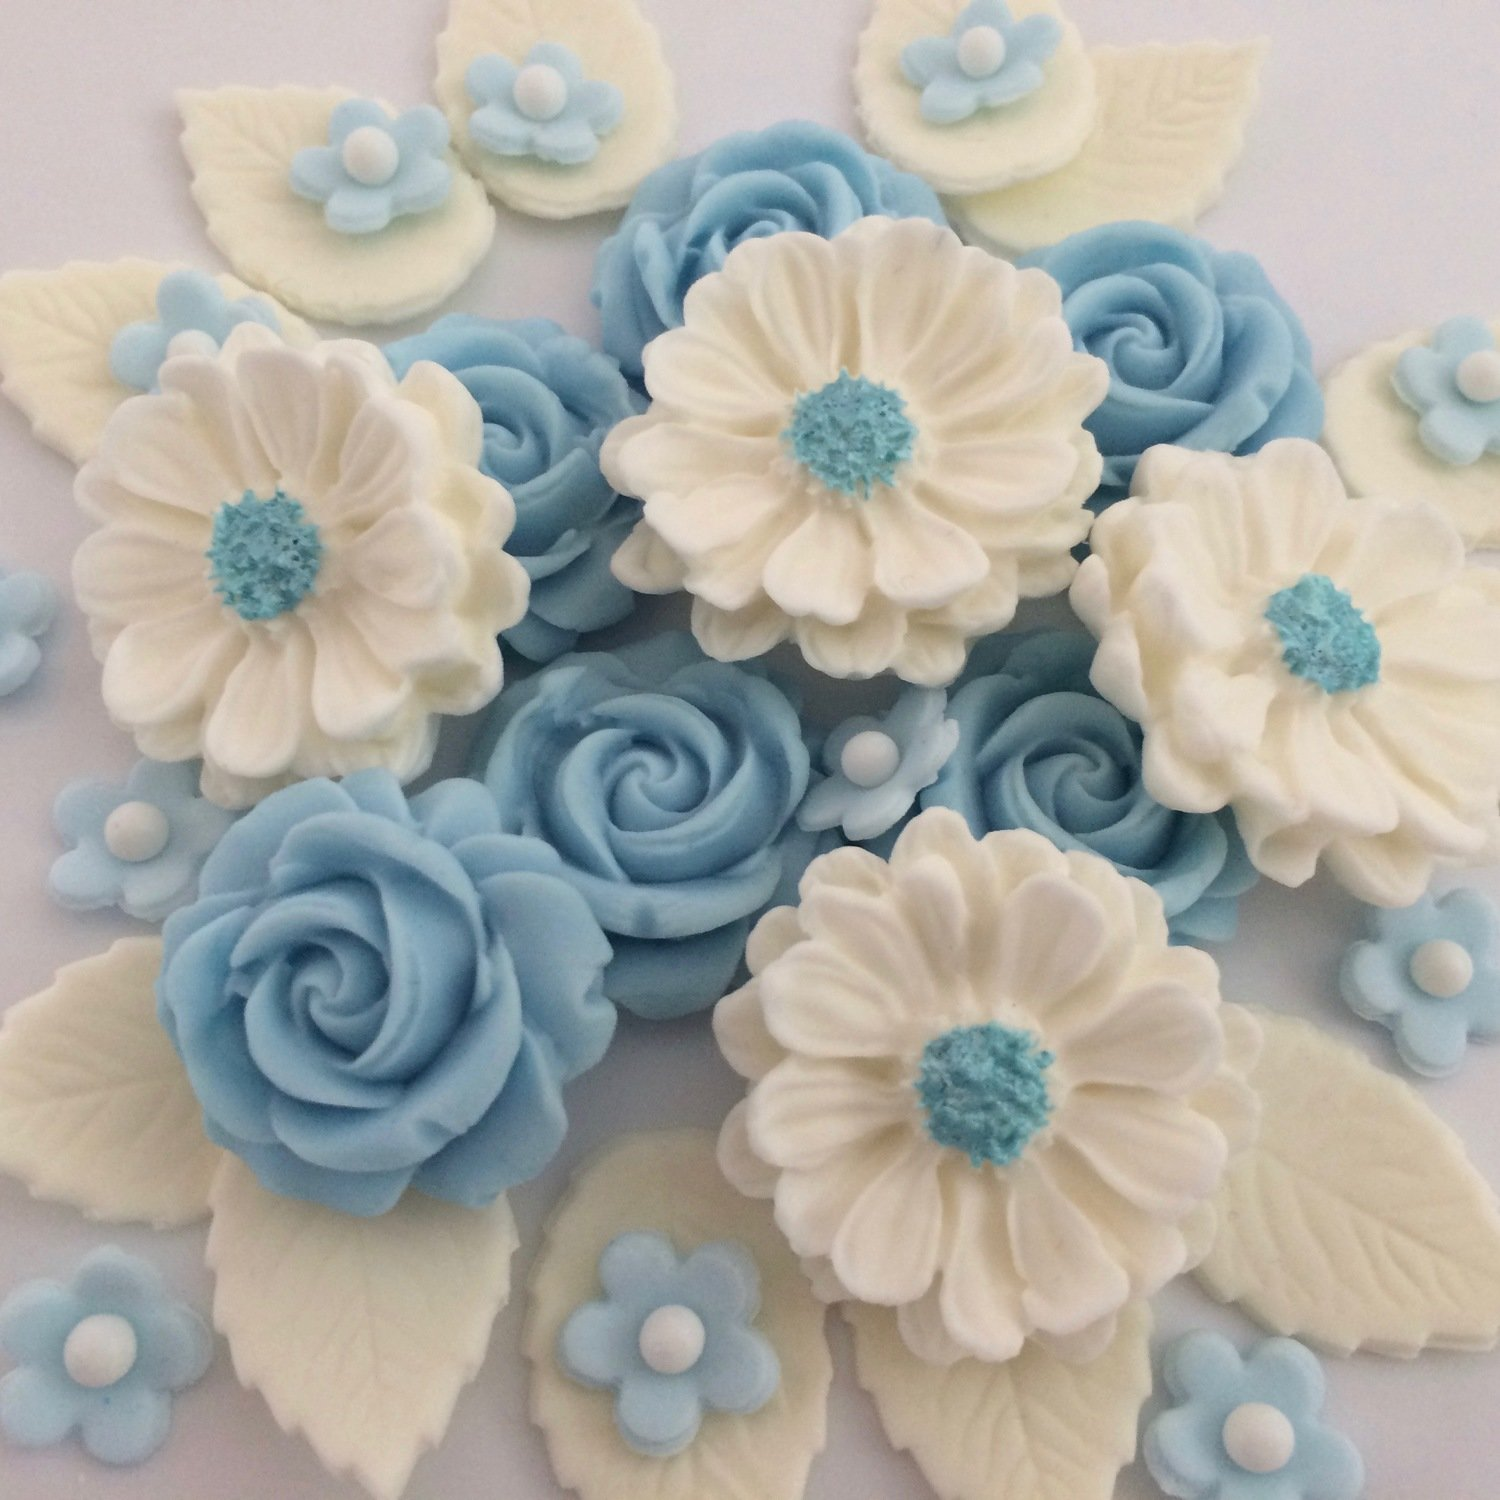 Baby Blue Rose Bouquet